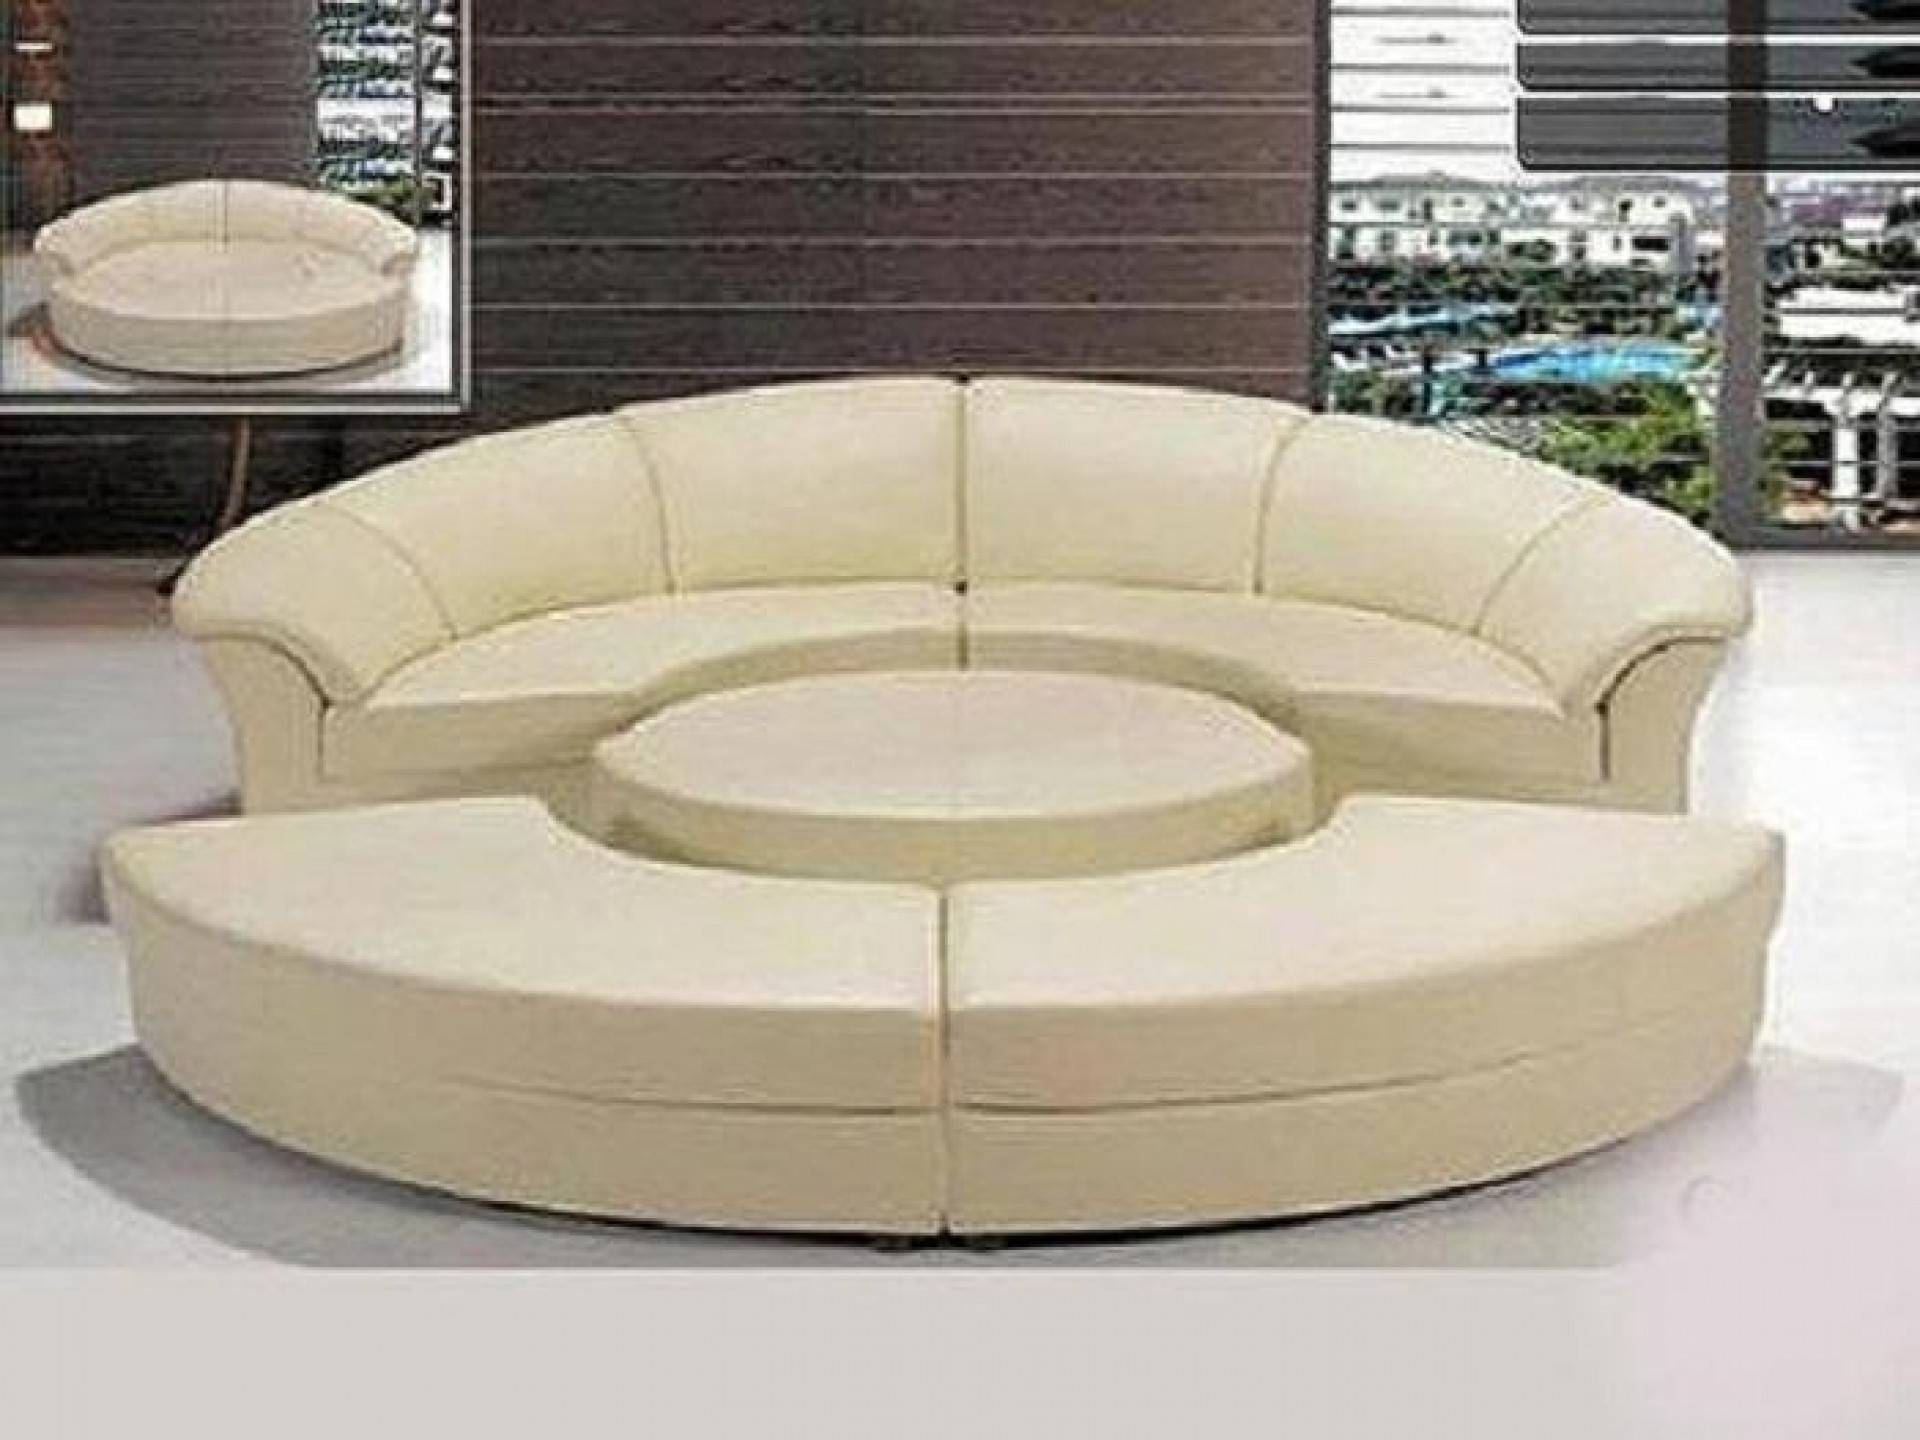 Sofa Round Sectional Bed | Tamingthesat within Round Sofas (Image 19 of 30)